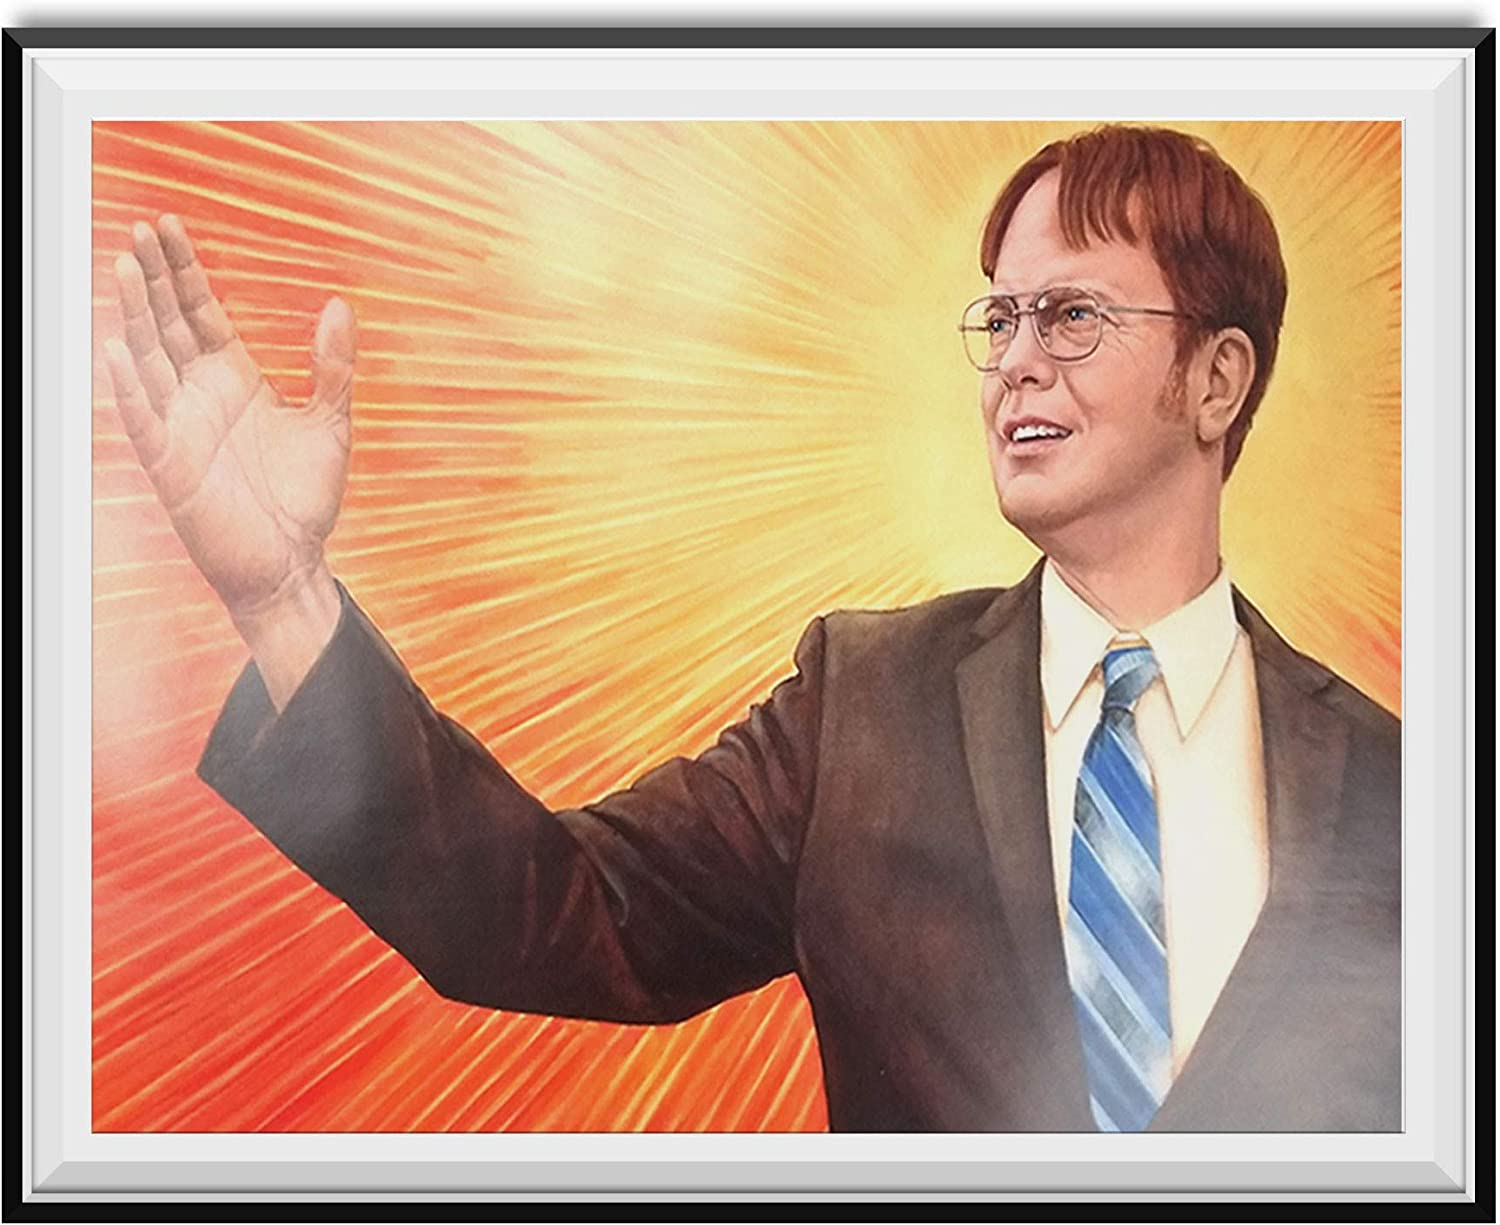 My Party Shirt Dwight Schrute Supreme Leader Branch Manager Painting Poster The Office TV Show